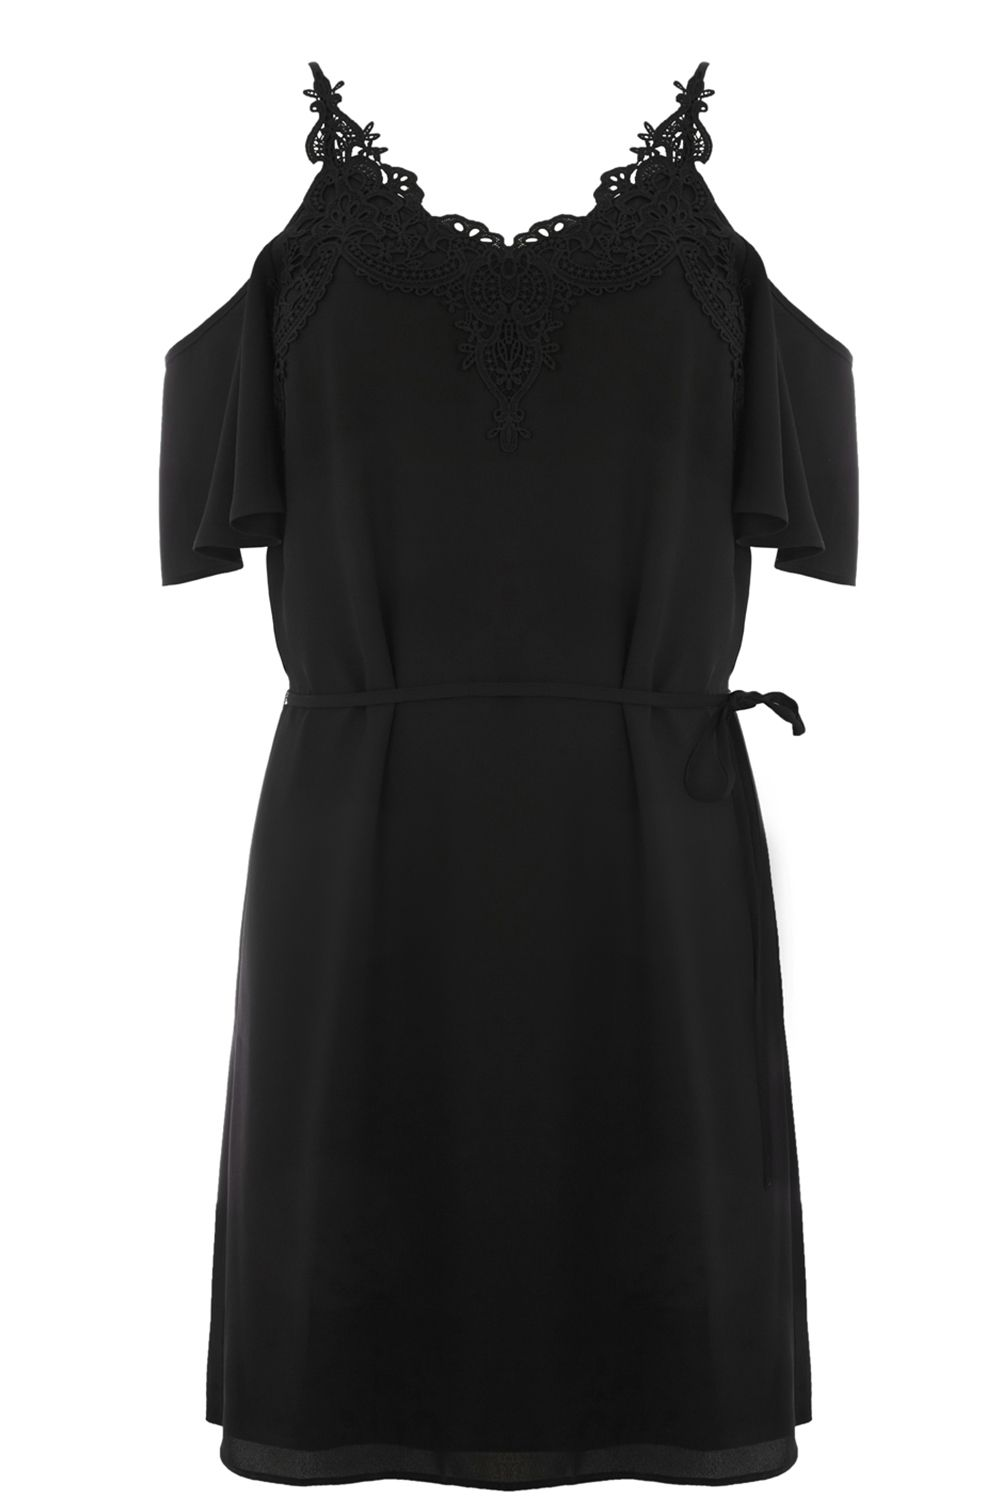 Oasis LACE TRIM COLD SHOULDER DRESS, Black